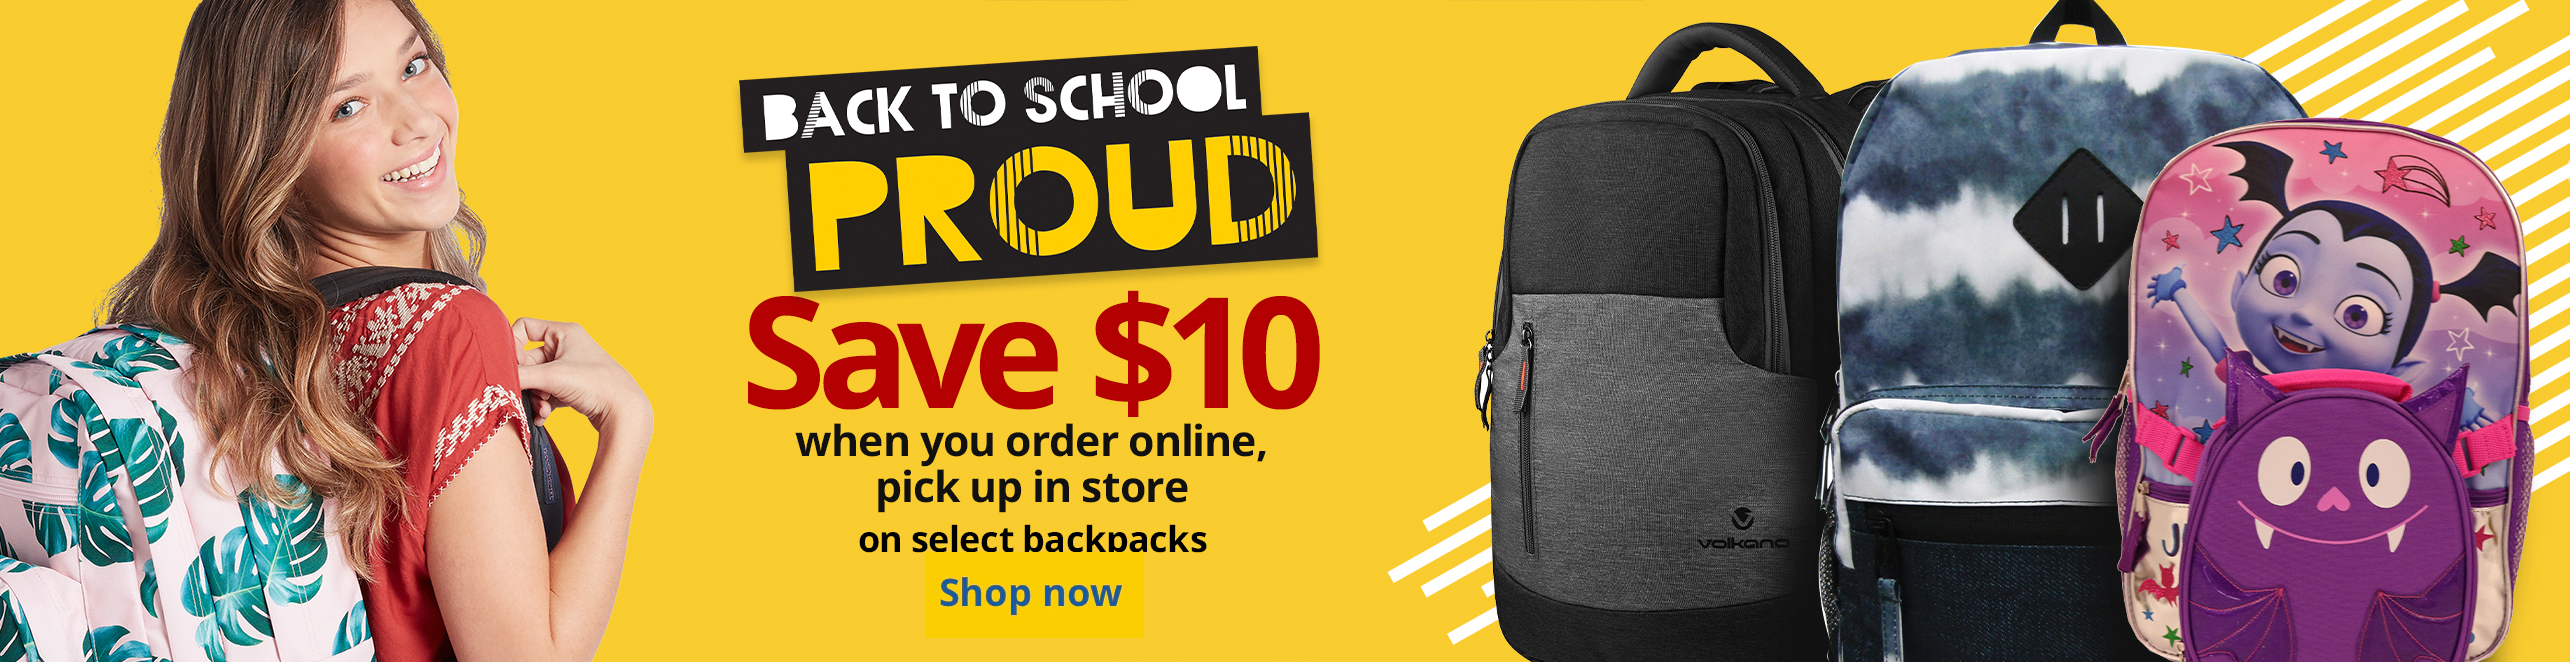 Save $10 When You Order Online, Pick Up In Store on Select Backpacks